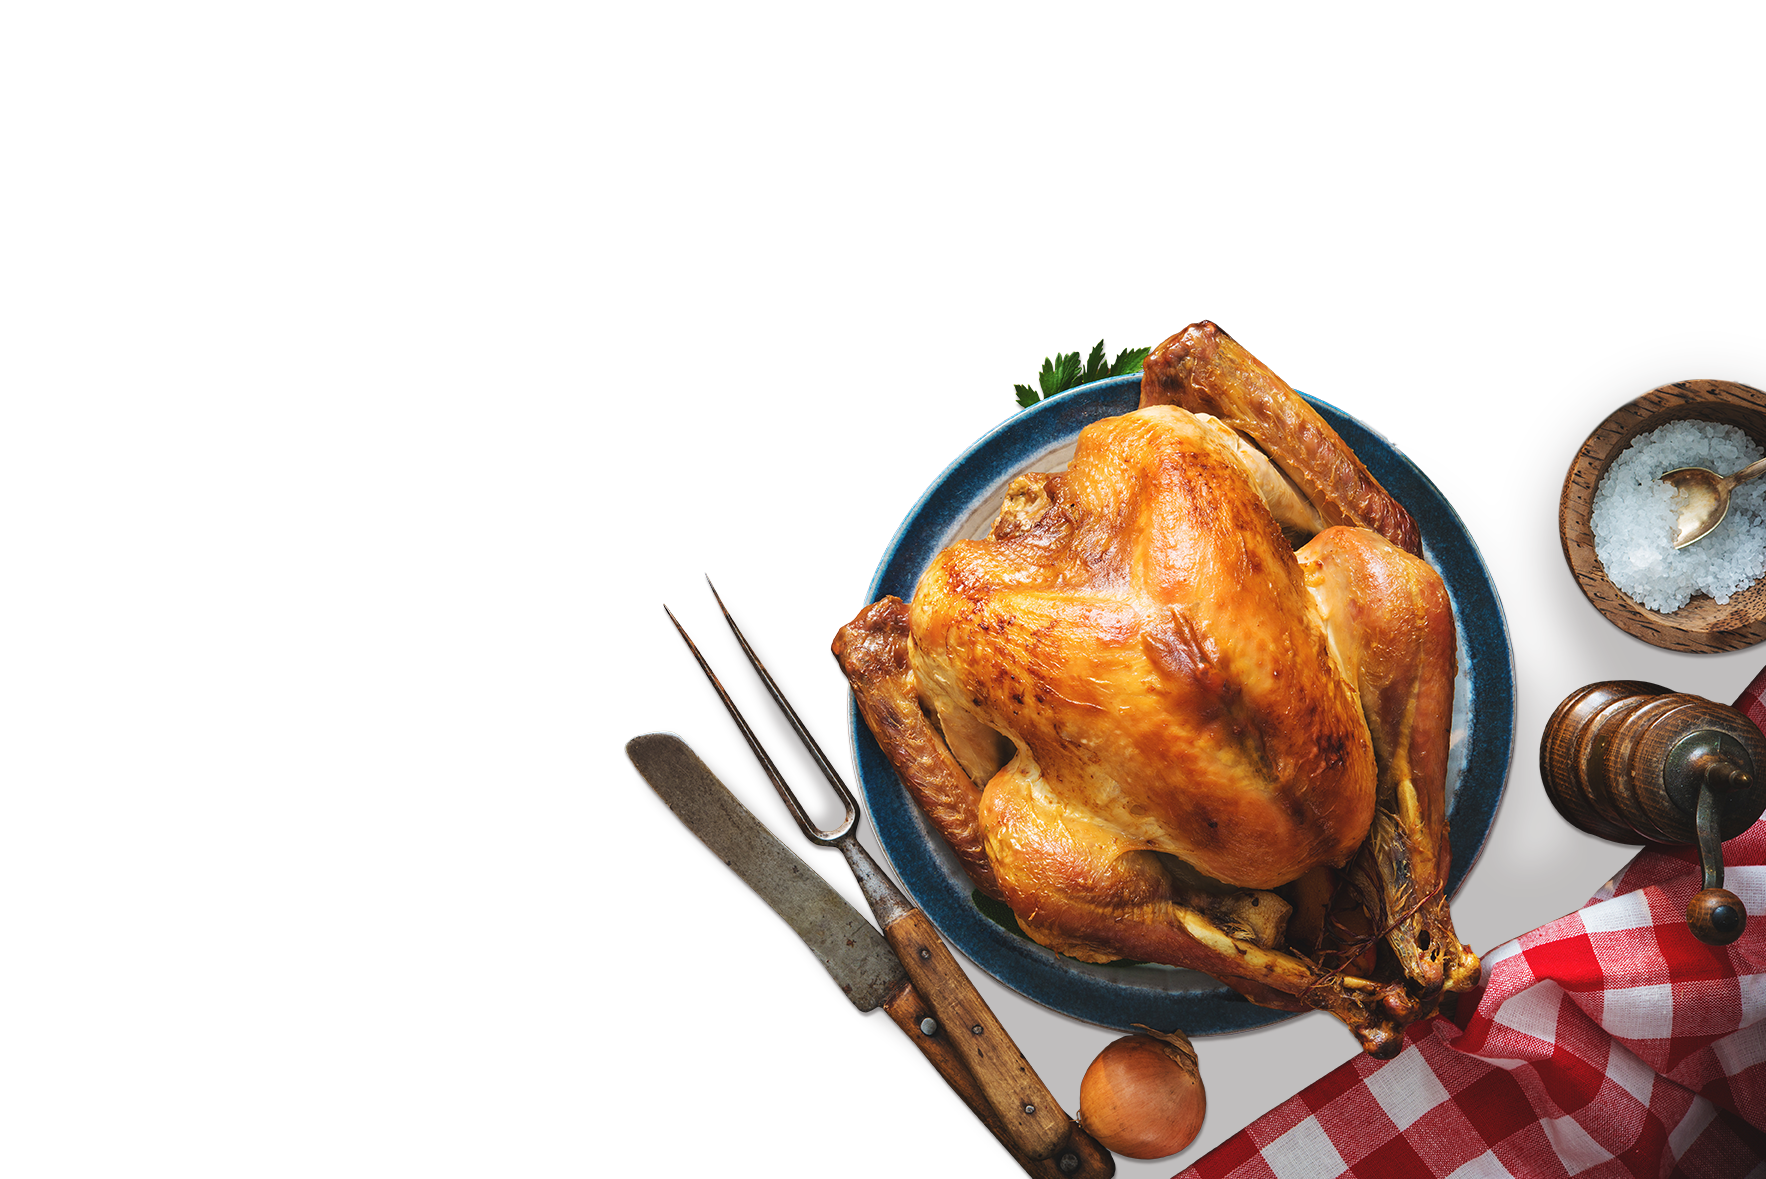 Let us take care of your holiday meals!